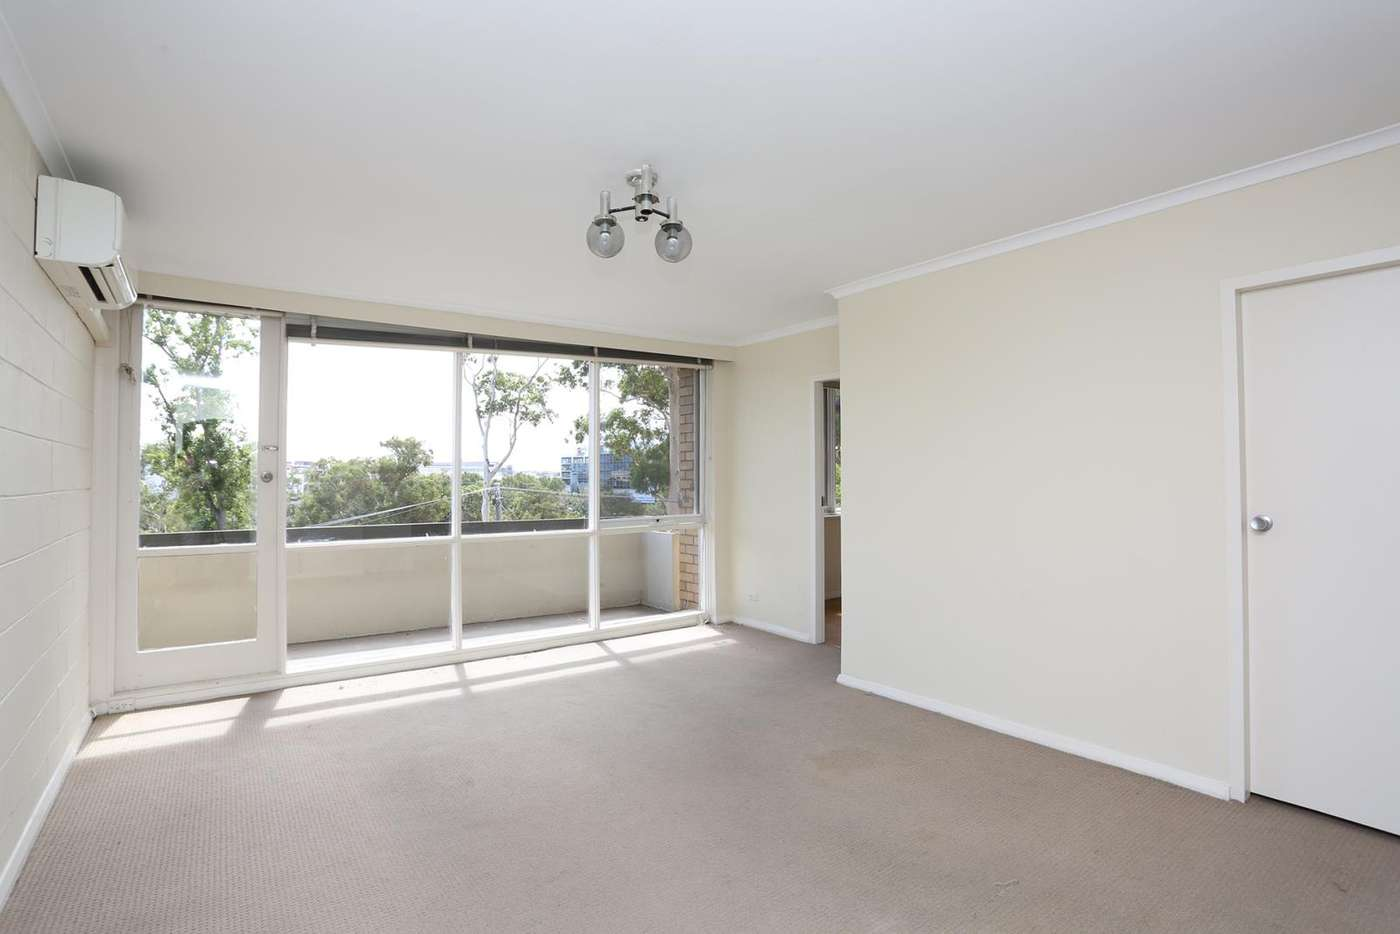 Main view of Homely apartment listing, 7/55 Darling Street, South Yarra VIC 3141